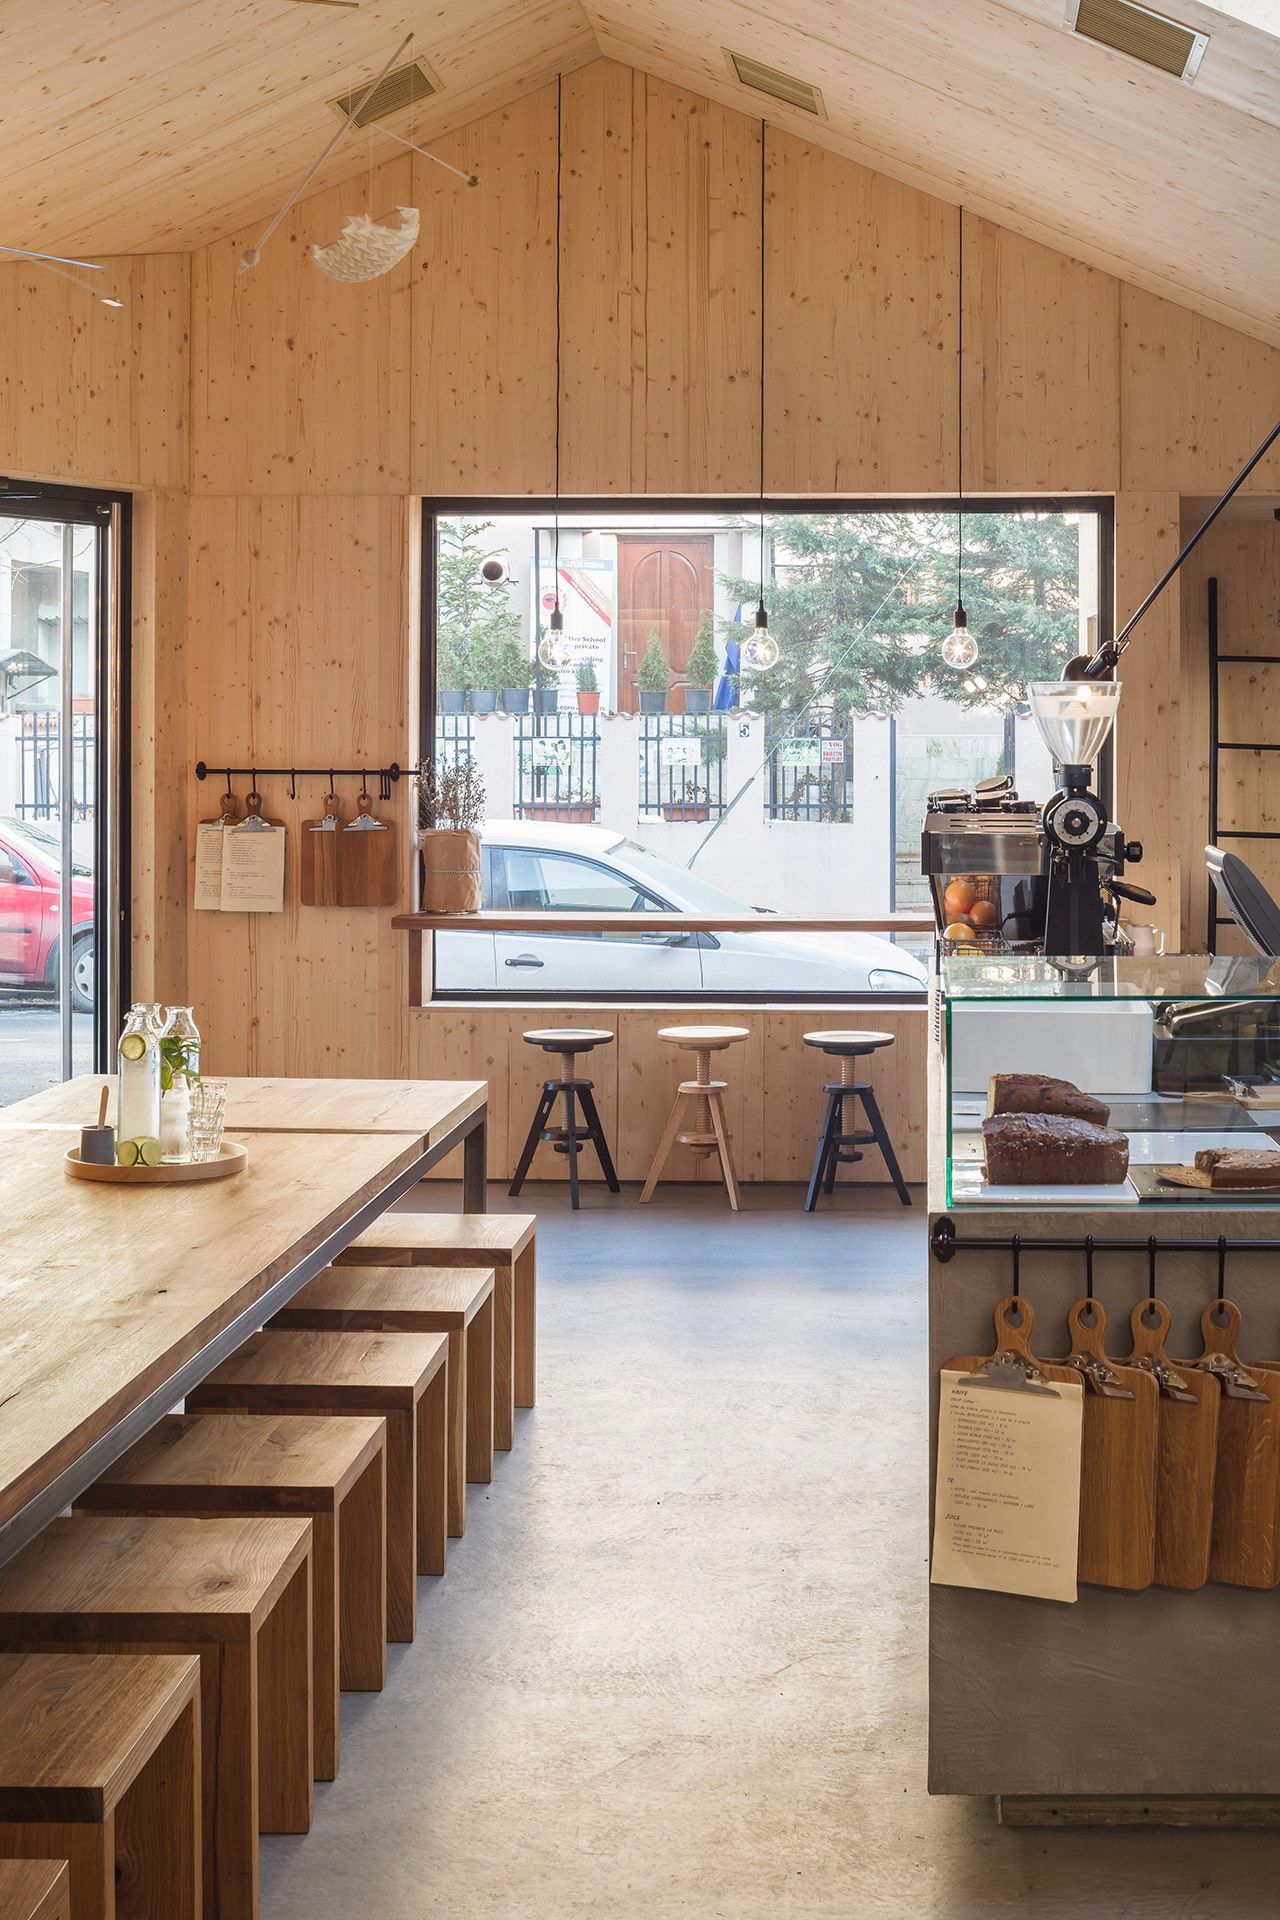 Juice Bar Cabin by Not a Number Architects